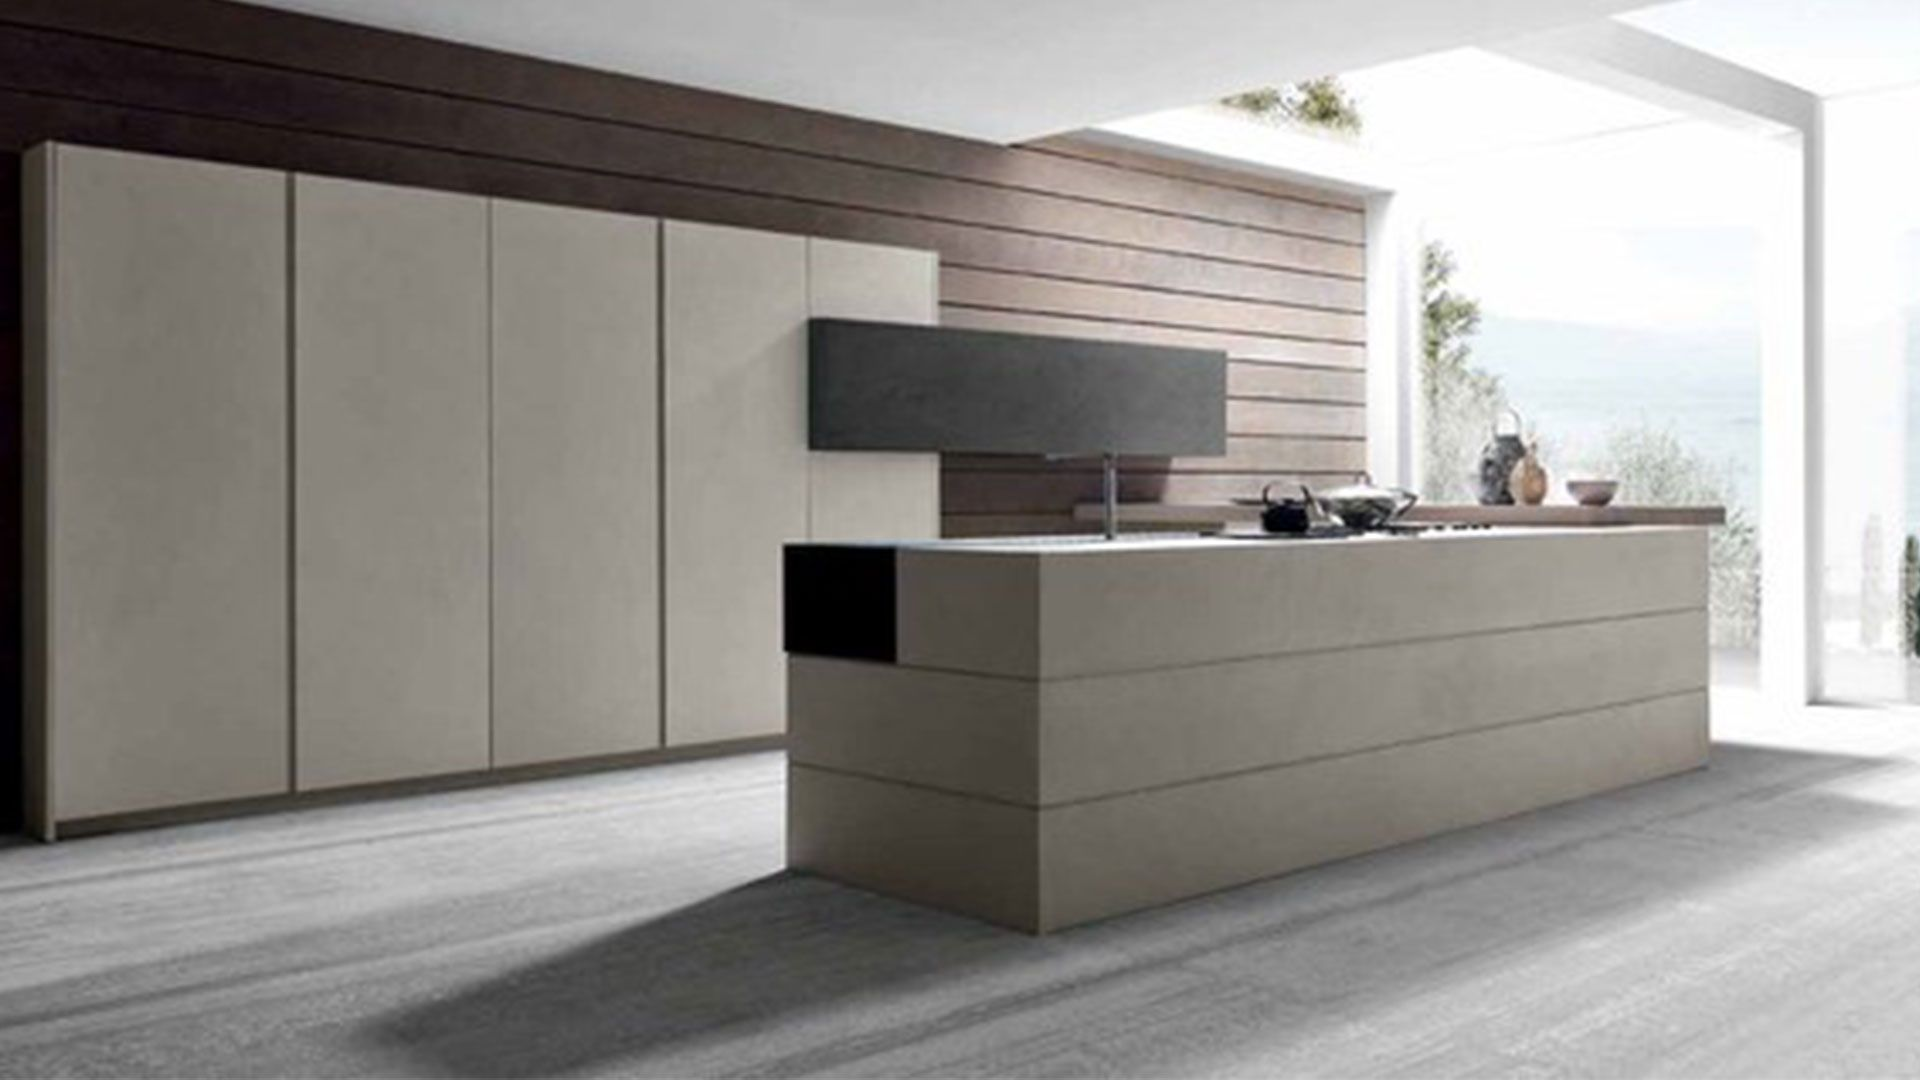 Kitchen Island Modern Kitchen 2014 Kitchen Design Trends With Grey New Modern Kitchen Design Ideas 2014 2018